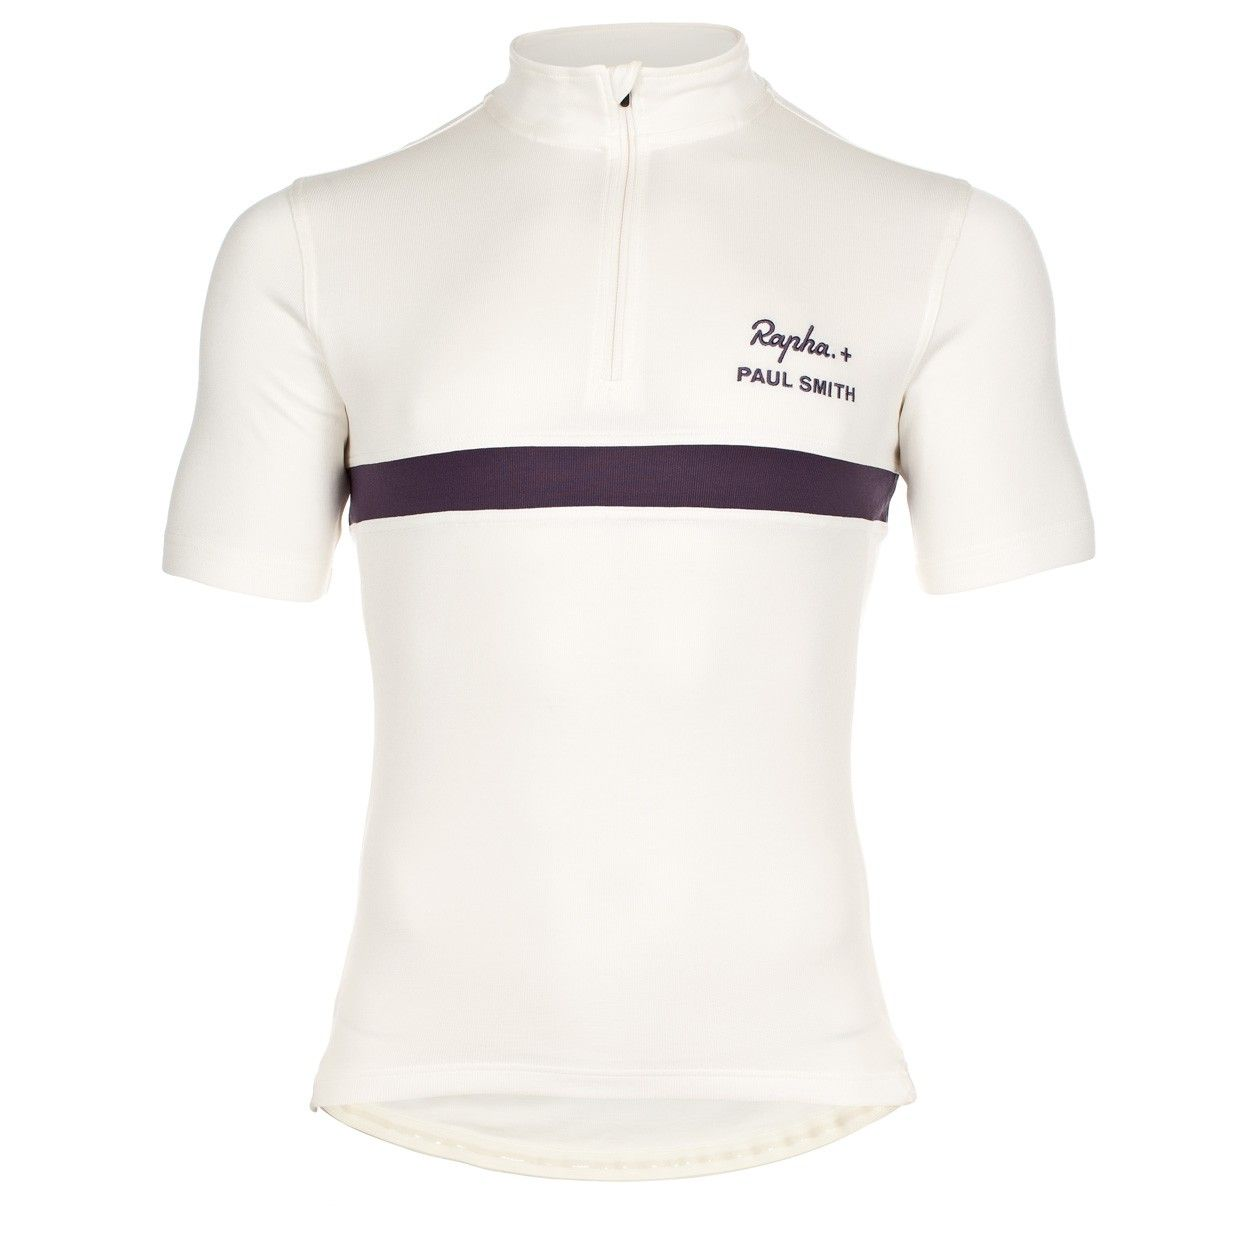 Rapha + Paul Smith - White PS Club Cycling Jersey - £130  f9ba3ccc8